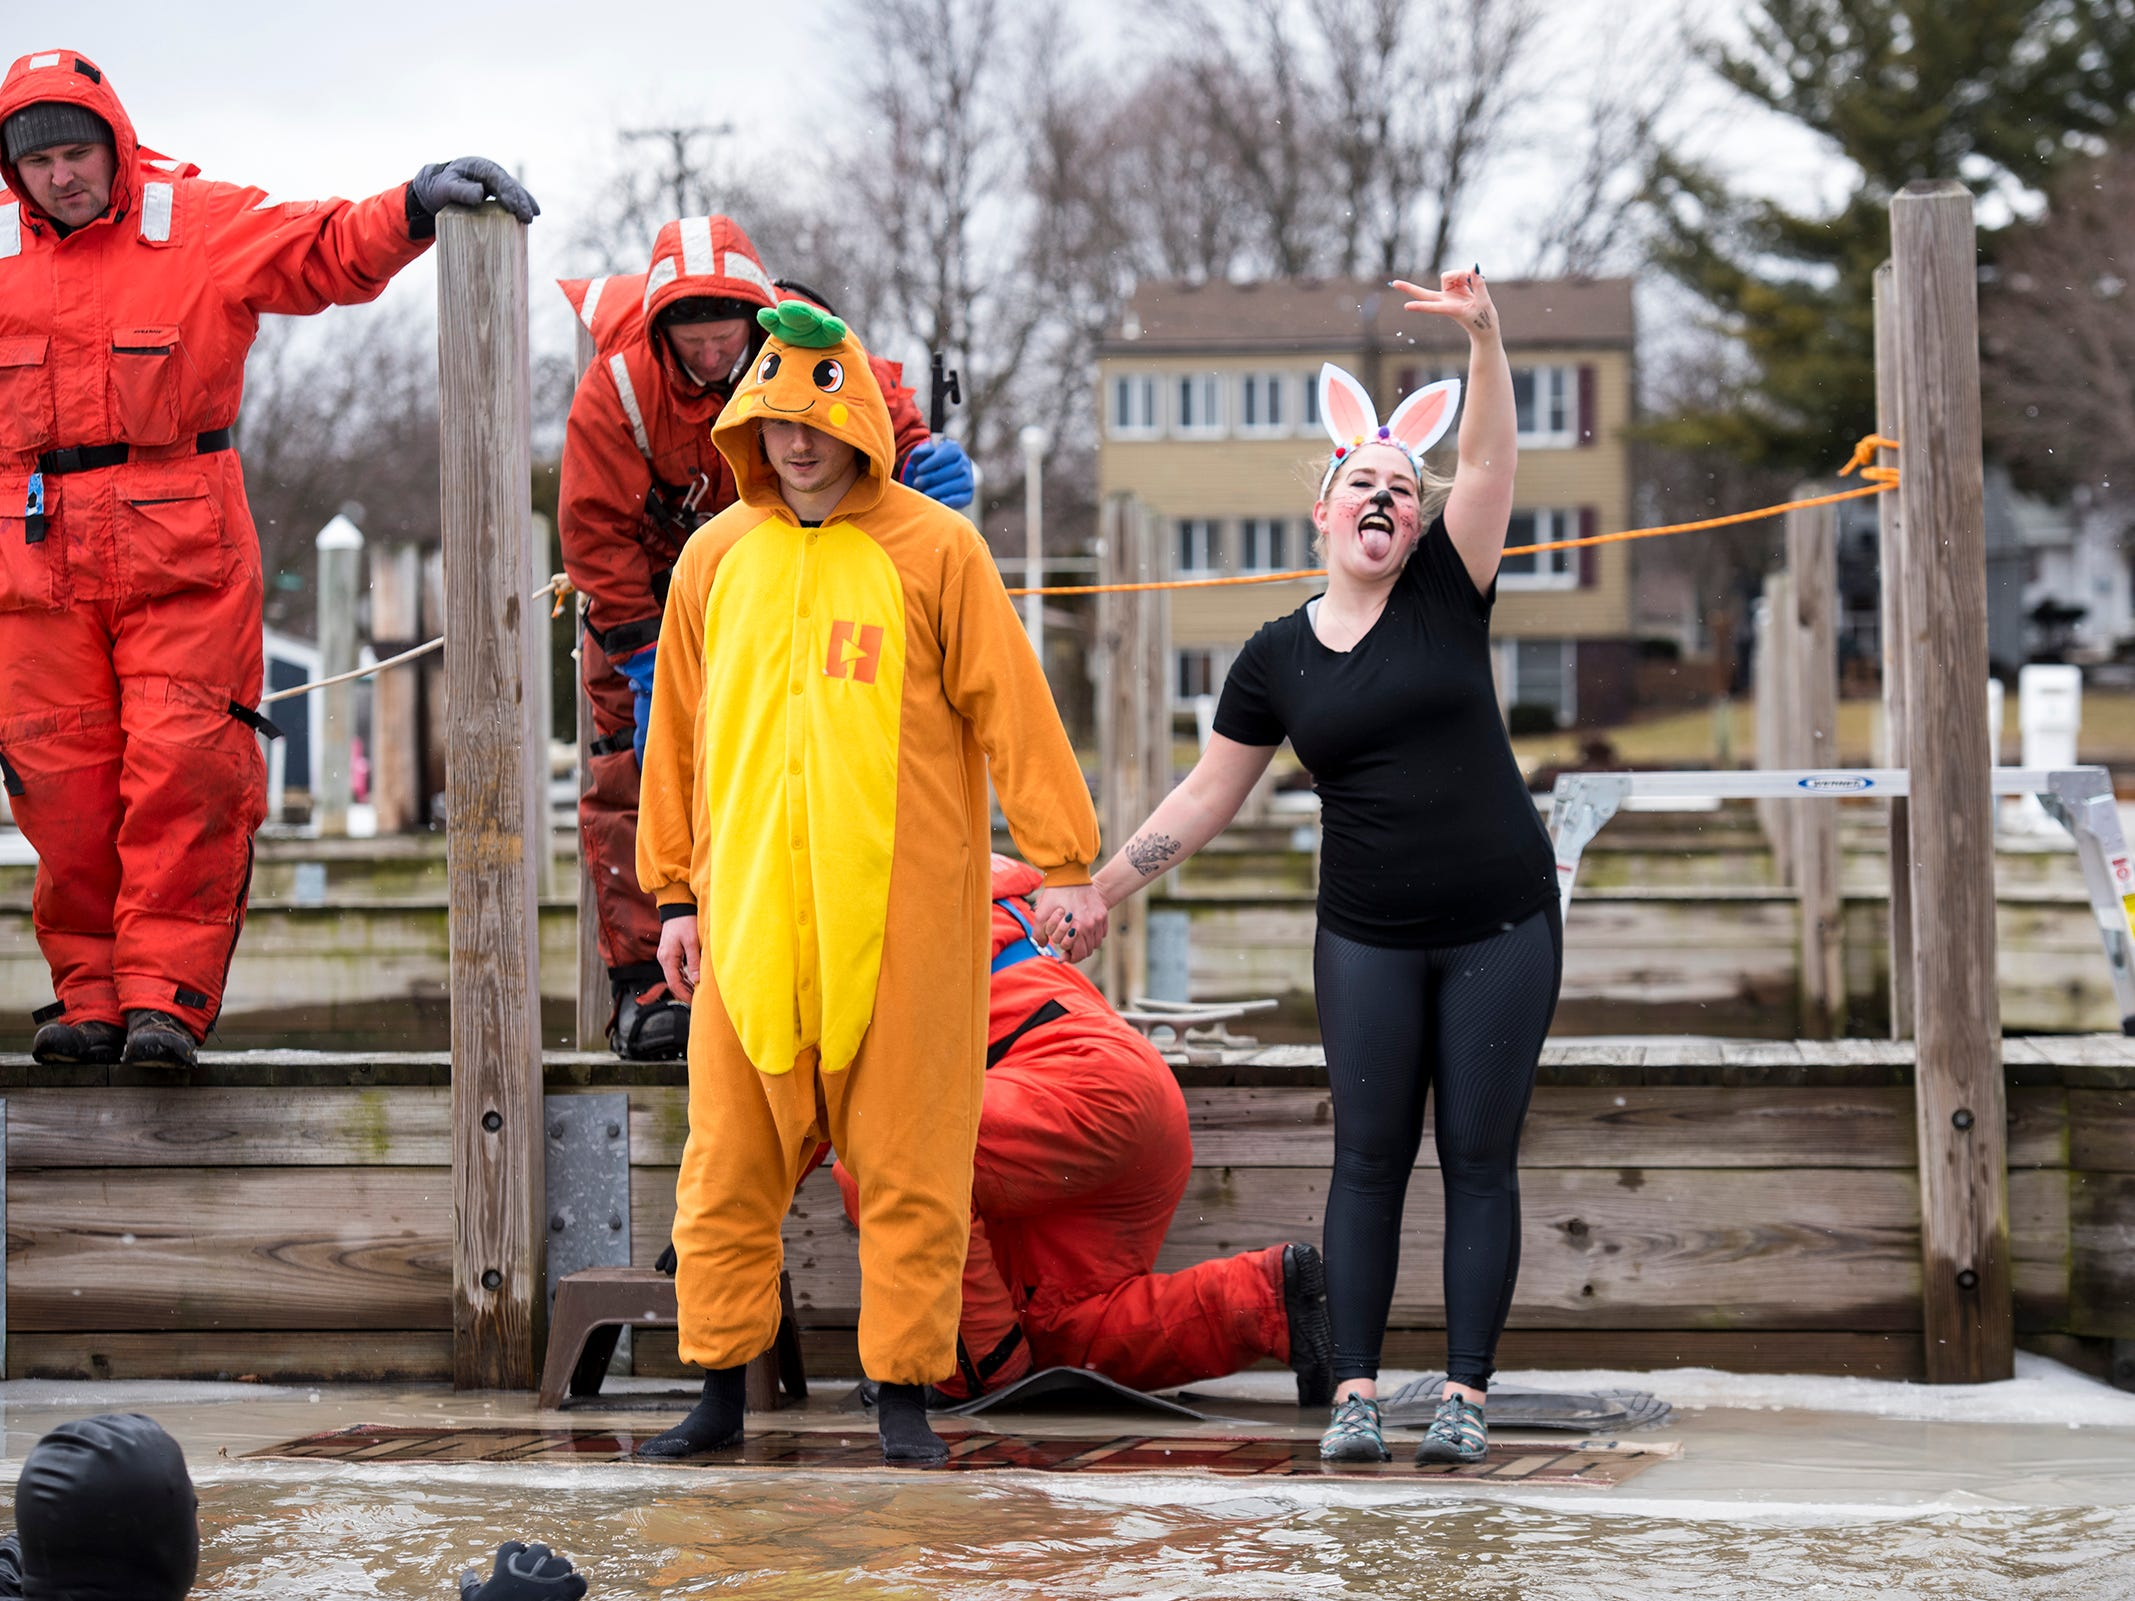 Brianna Thurston, dressed as a rabbit, strikes a pose while holding hands with Bryan Nowak,, who is dressed as a carrot, before they jump into the St. Clair Boat Harbor Sunday, Feb. 24, 2019 during the annual St. Clair Polar Plunge.